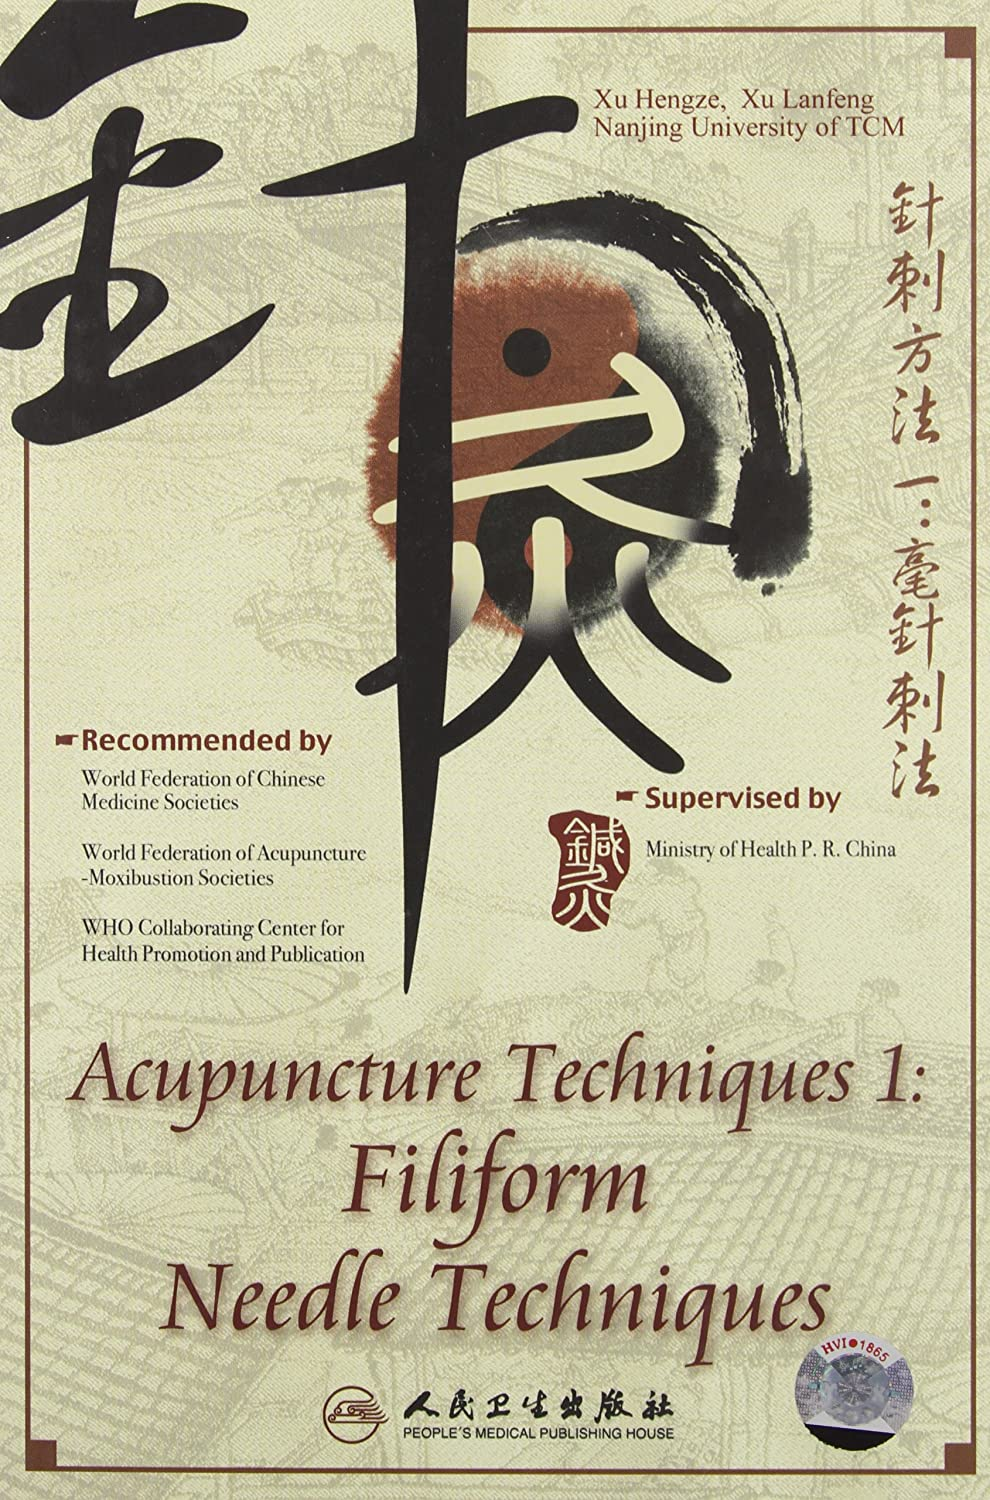 Amazon.com: Acupuncture and Moxibustion Techniques: Xu Hengze, Xu Lanfeng:  Movies & TV